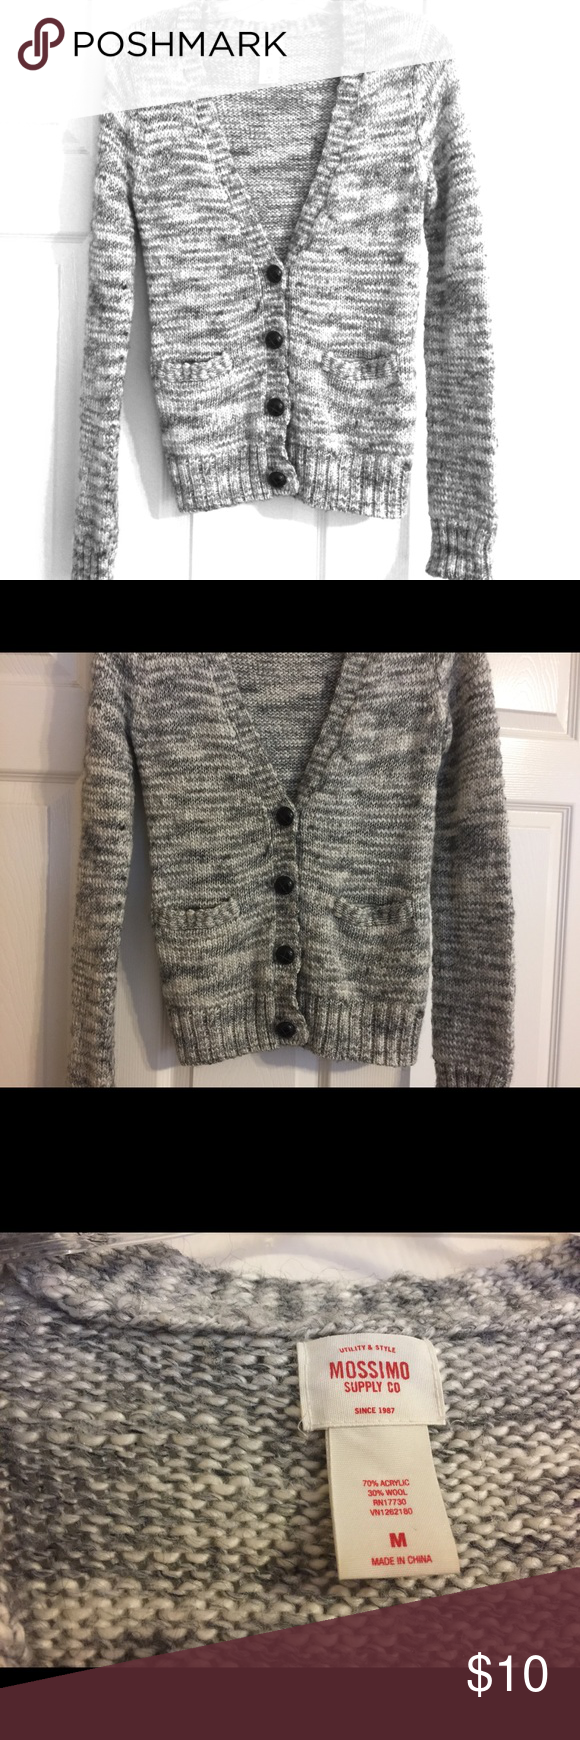 Women's Mossimo Supply co sweater In great condition. Size m. 70% acrylic 30% wool Mossimo Supply Co Sweaters Cardigans